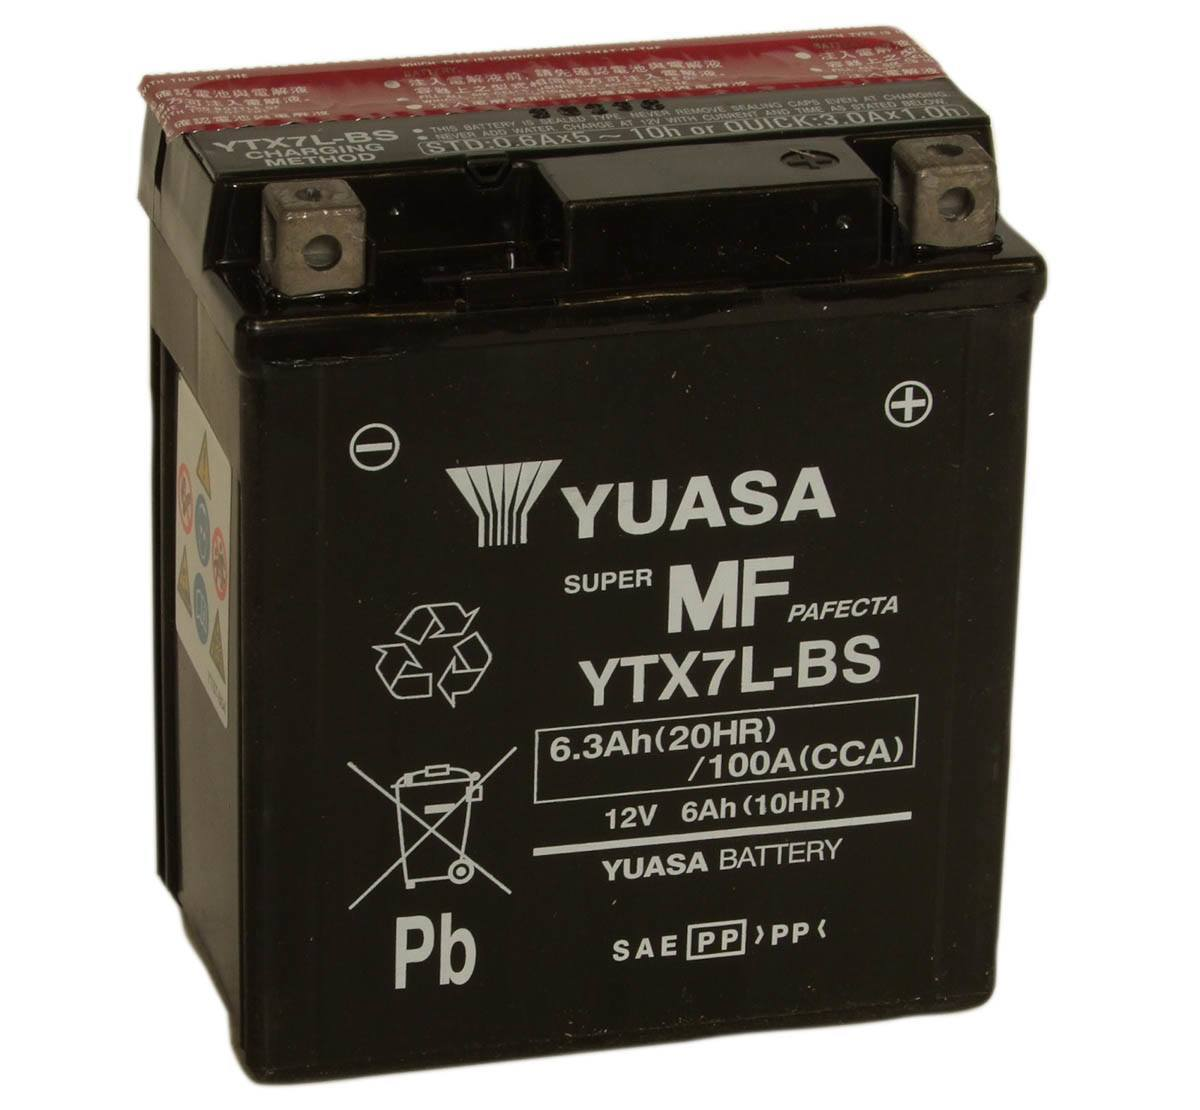 Yuasa YTX7L-BS 12V Motorcycle Battery